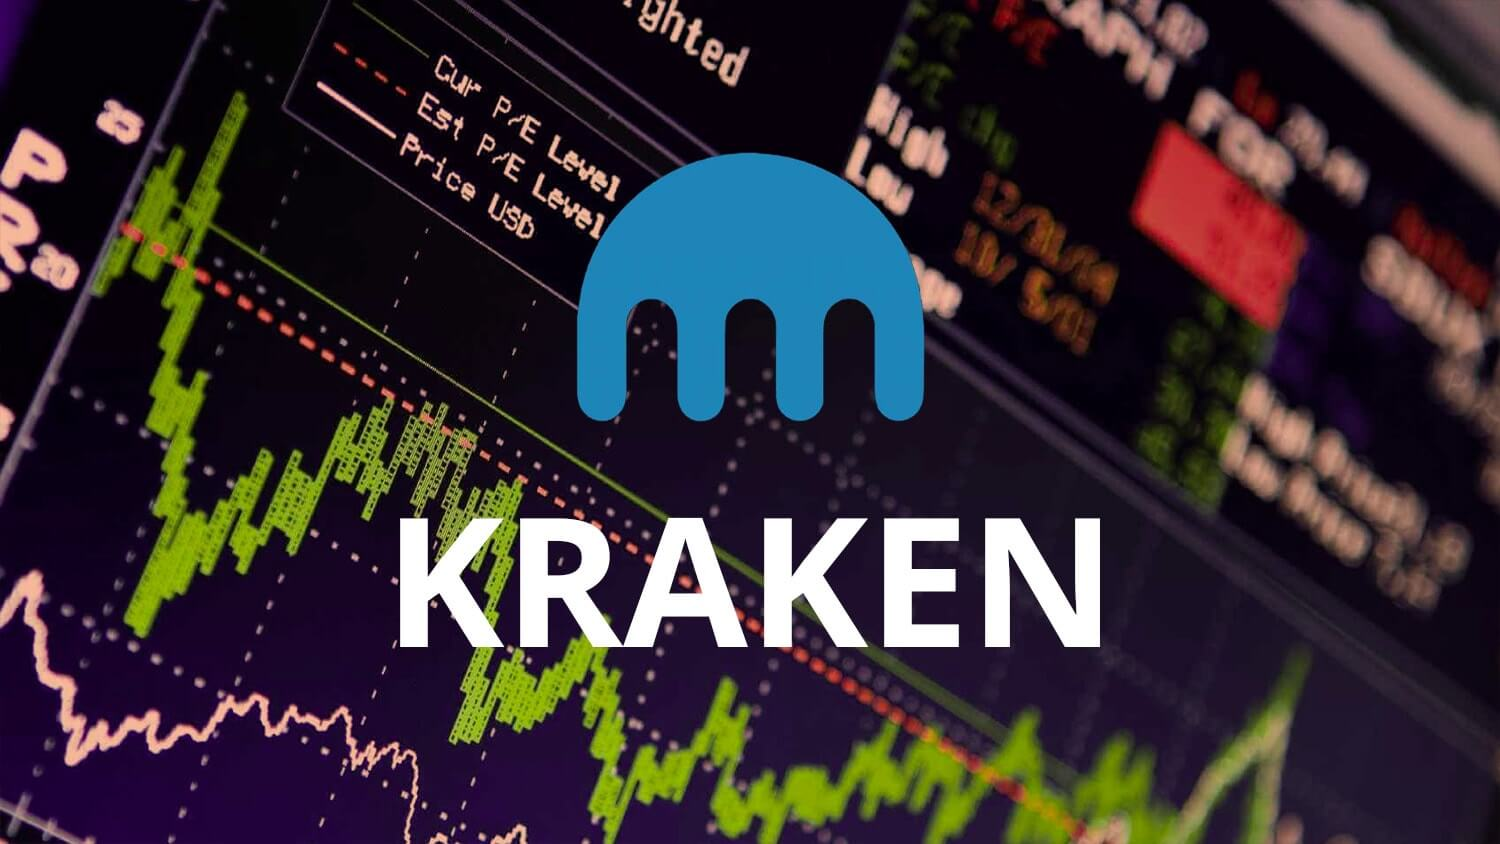 Law Enforcement Inquiries Sent to Kraken Nearly Tripled in 2018